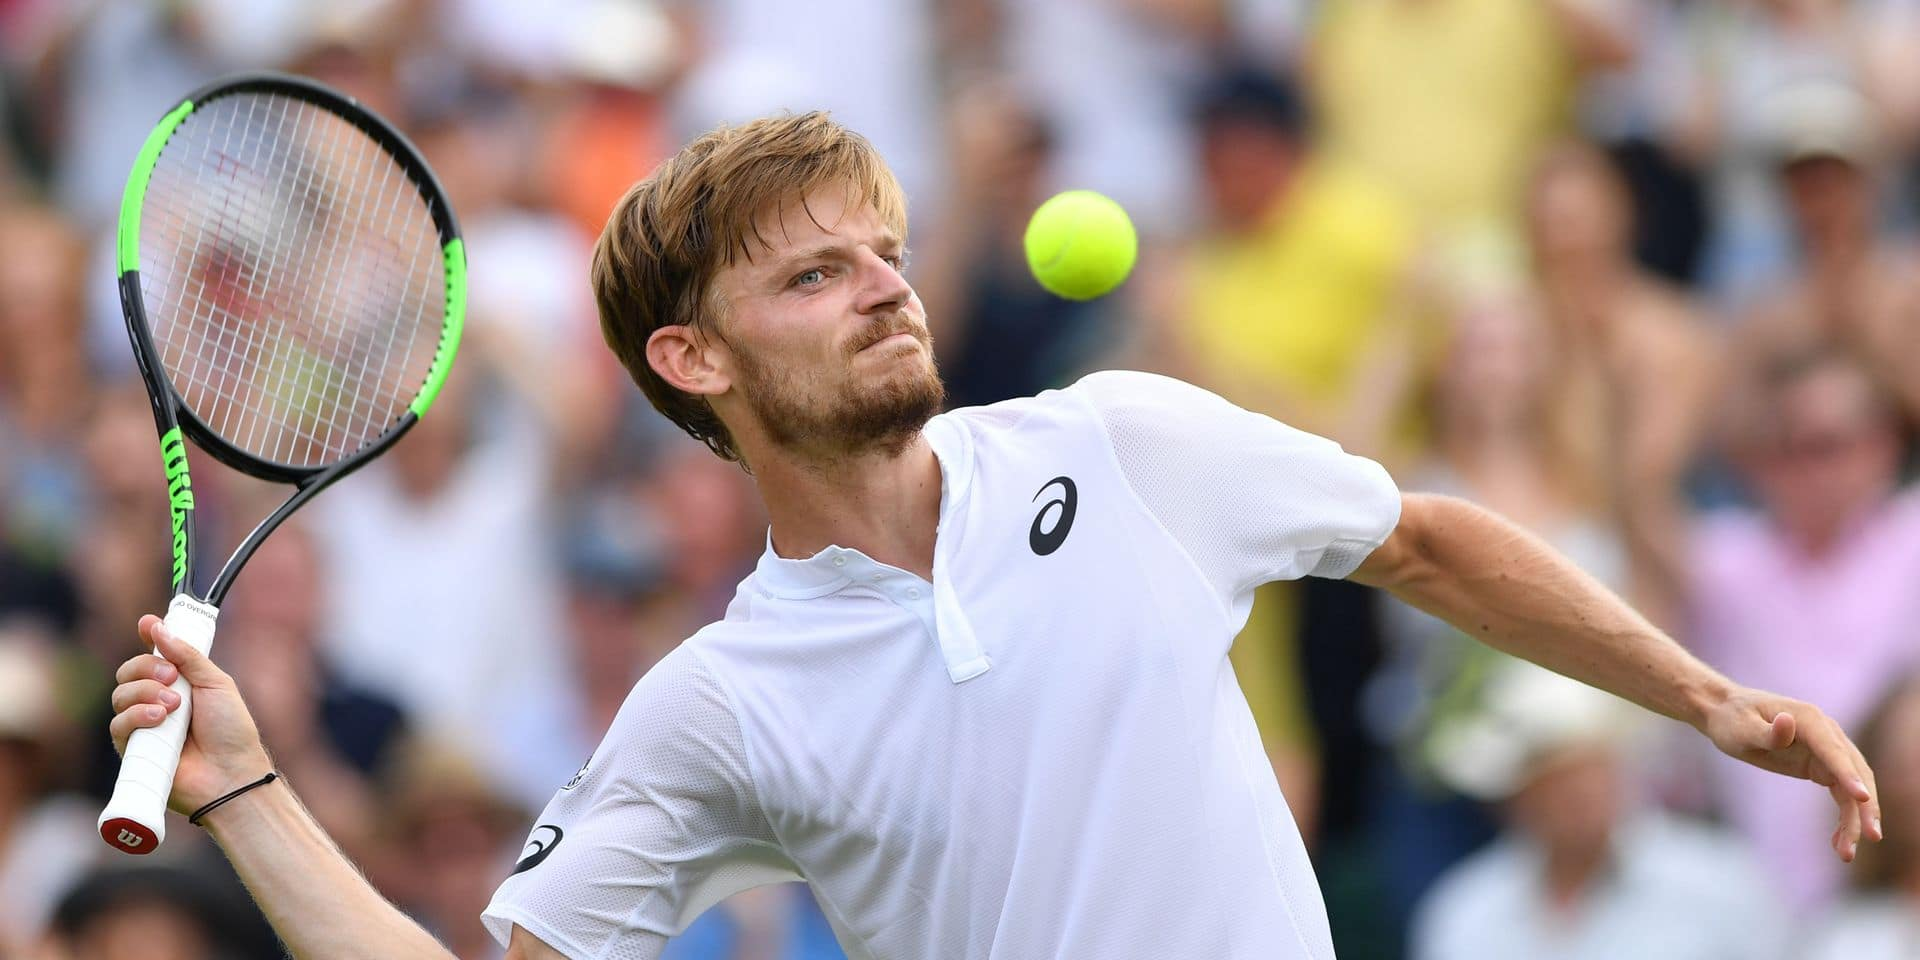 Belgium's David Goffin celebrates beating Russia's Daniil Medvedev during their men's singles third round match on the fifth day of the 2019 Wimbledon Championships at The All England Lawn Tennis Club in Wimbledon, southwest London, on July 5, 2019. (Photo by Glyn KIRK / AFP) / RESTRICTED TO EDITORIAL USE